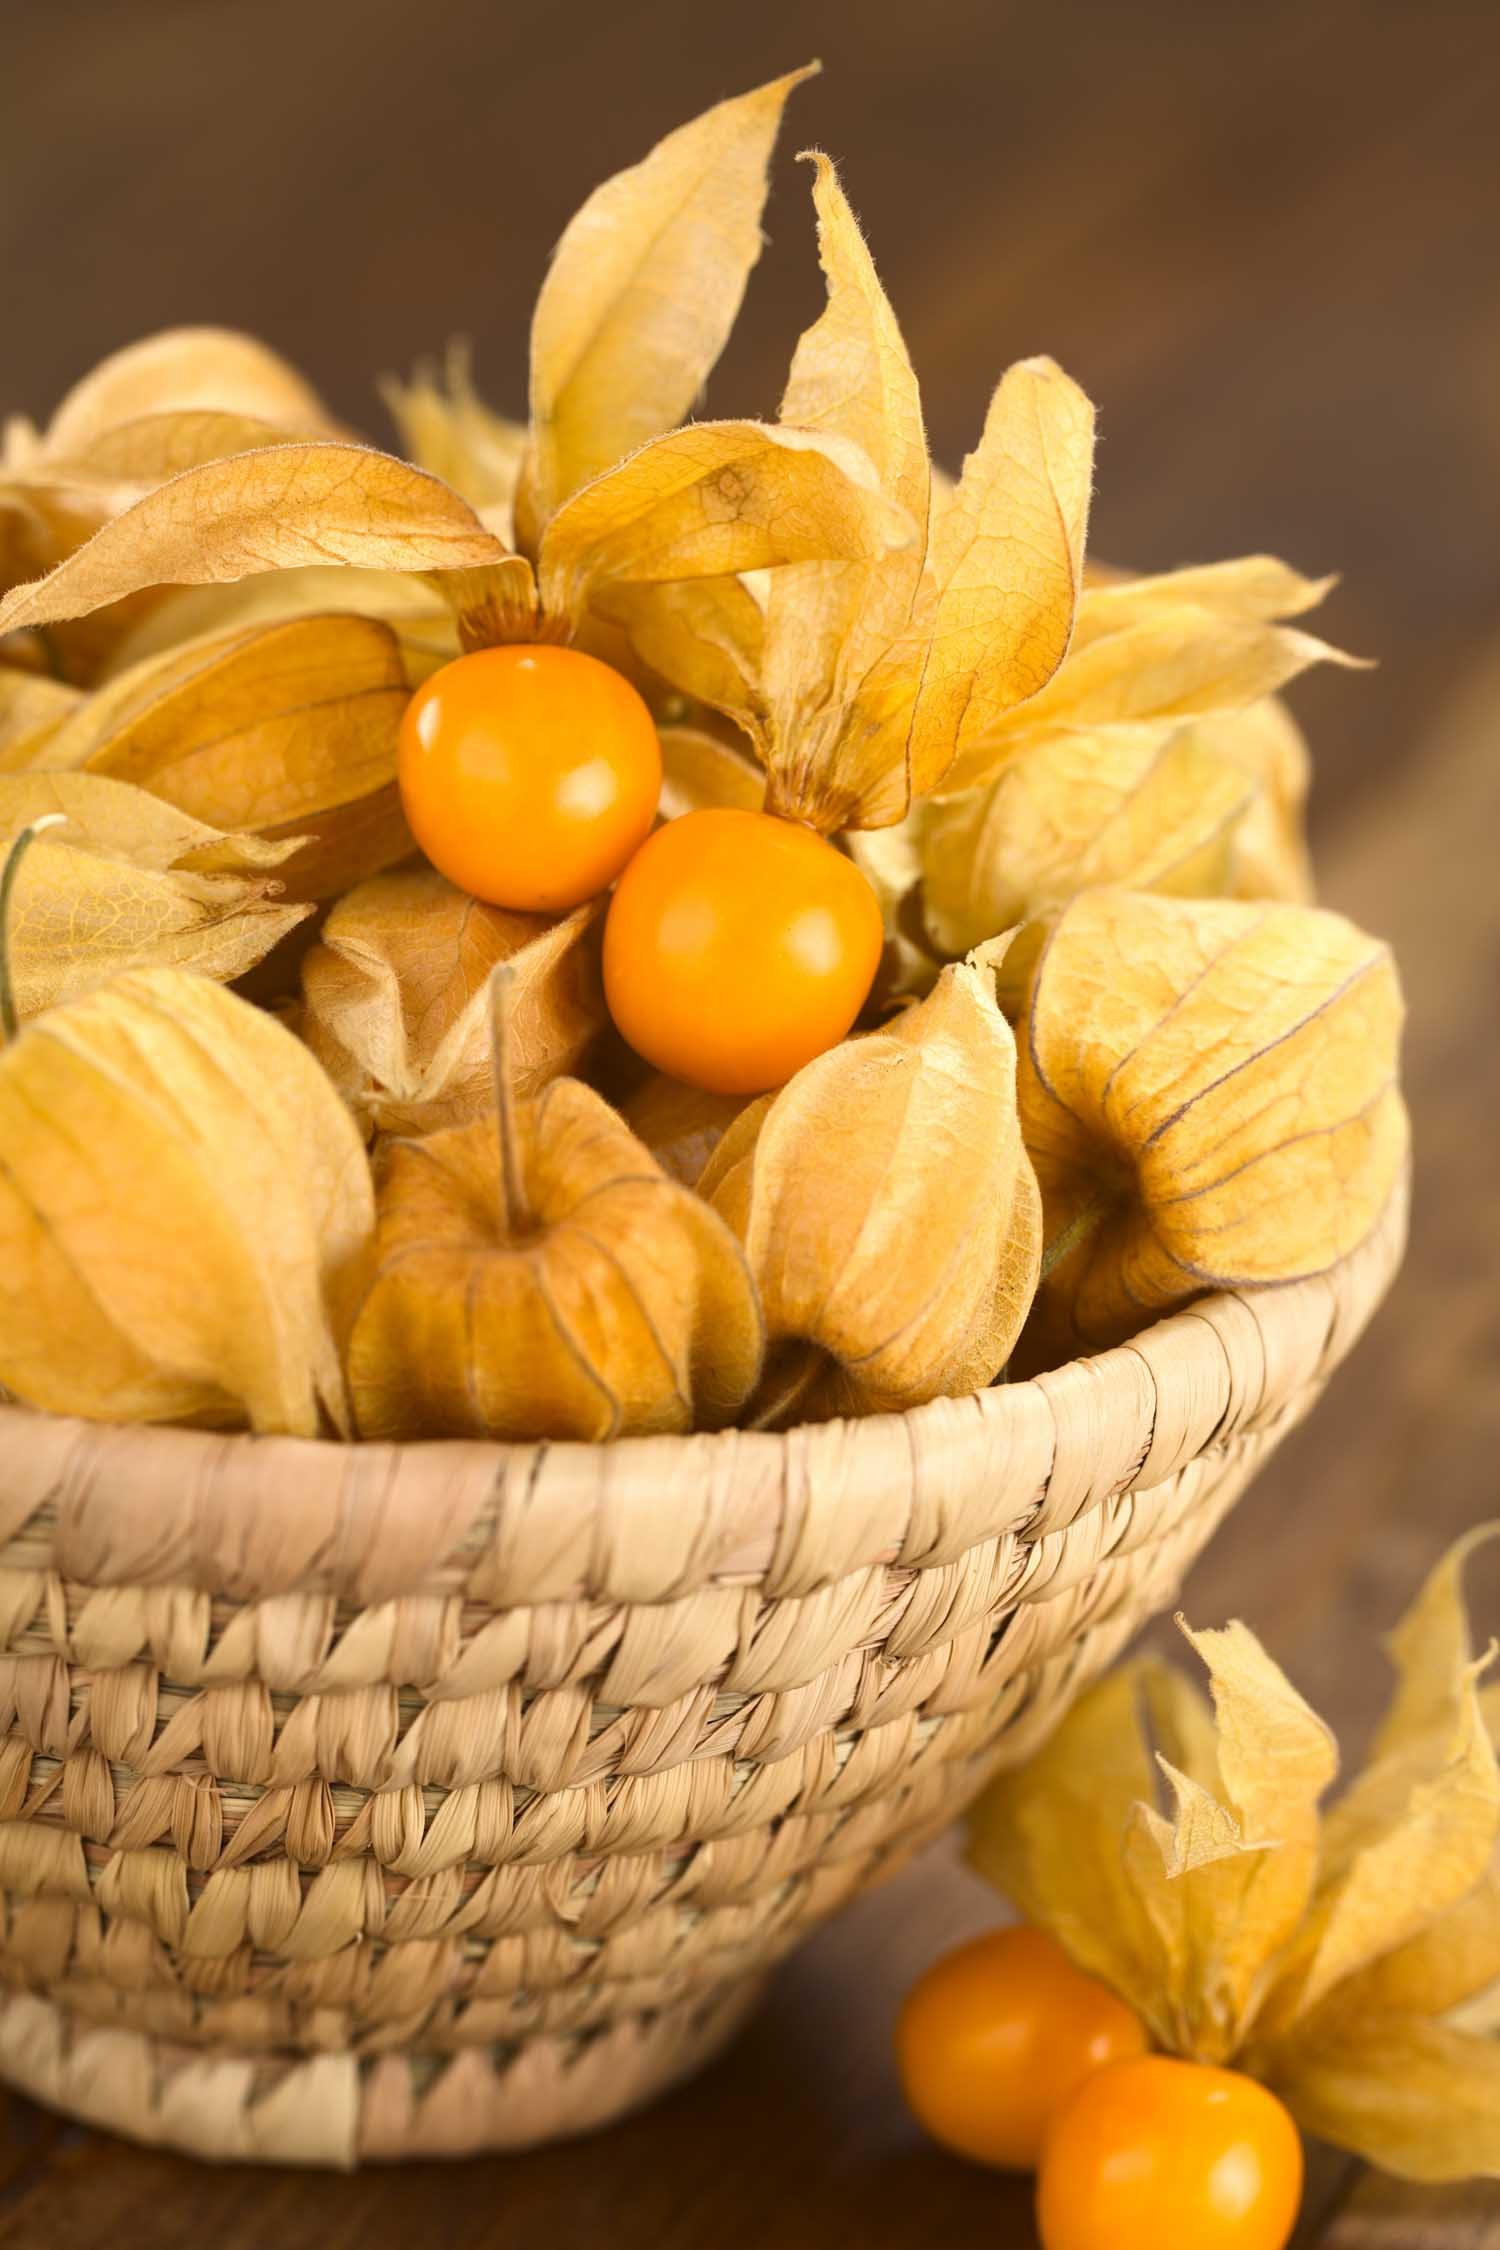 Basket of Peruvian fruit Capulin. Physalis berry fruits (lat. Physalis peruviana) with husk in basket (Selective Focus Focus on the open physalis berries in the basket)